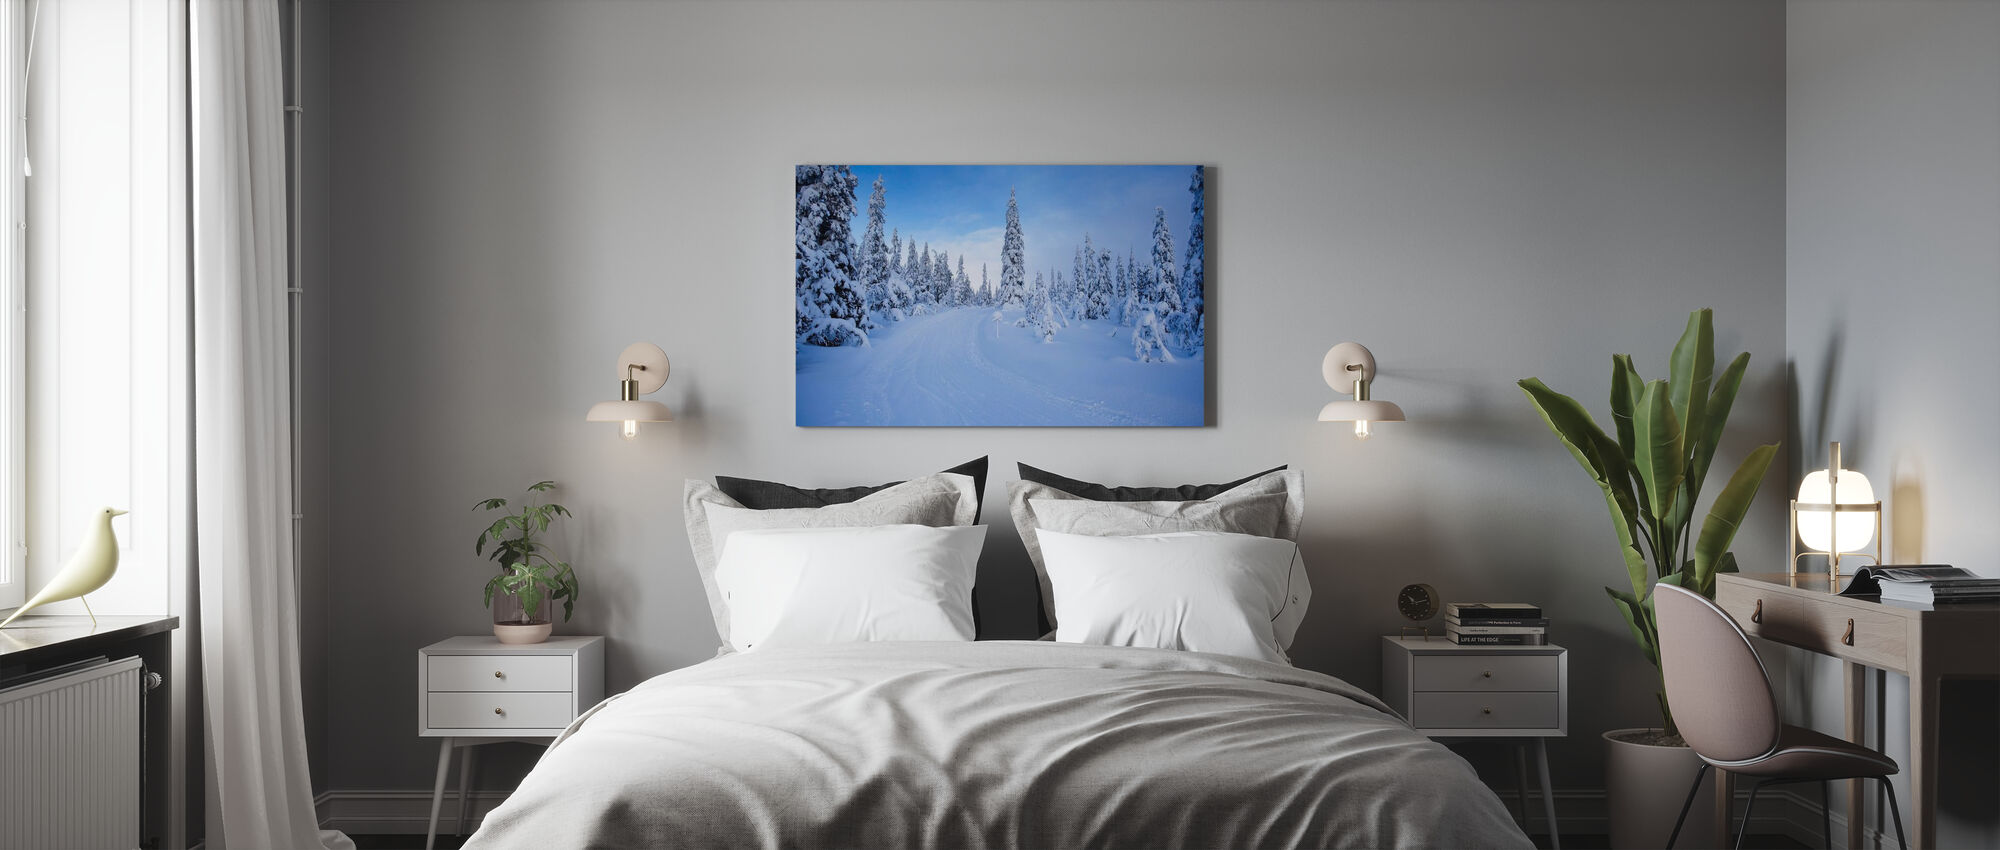 Ski track in Dalarna, Sweden - Canvas print - Bedroom